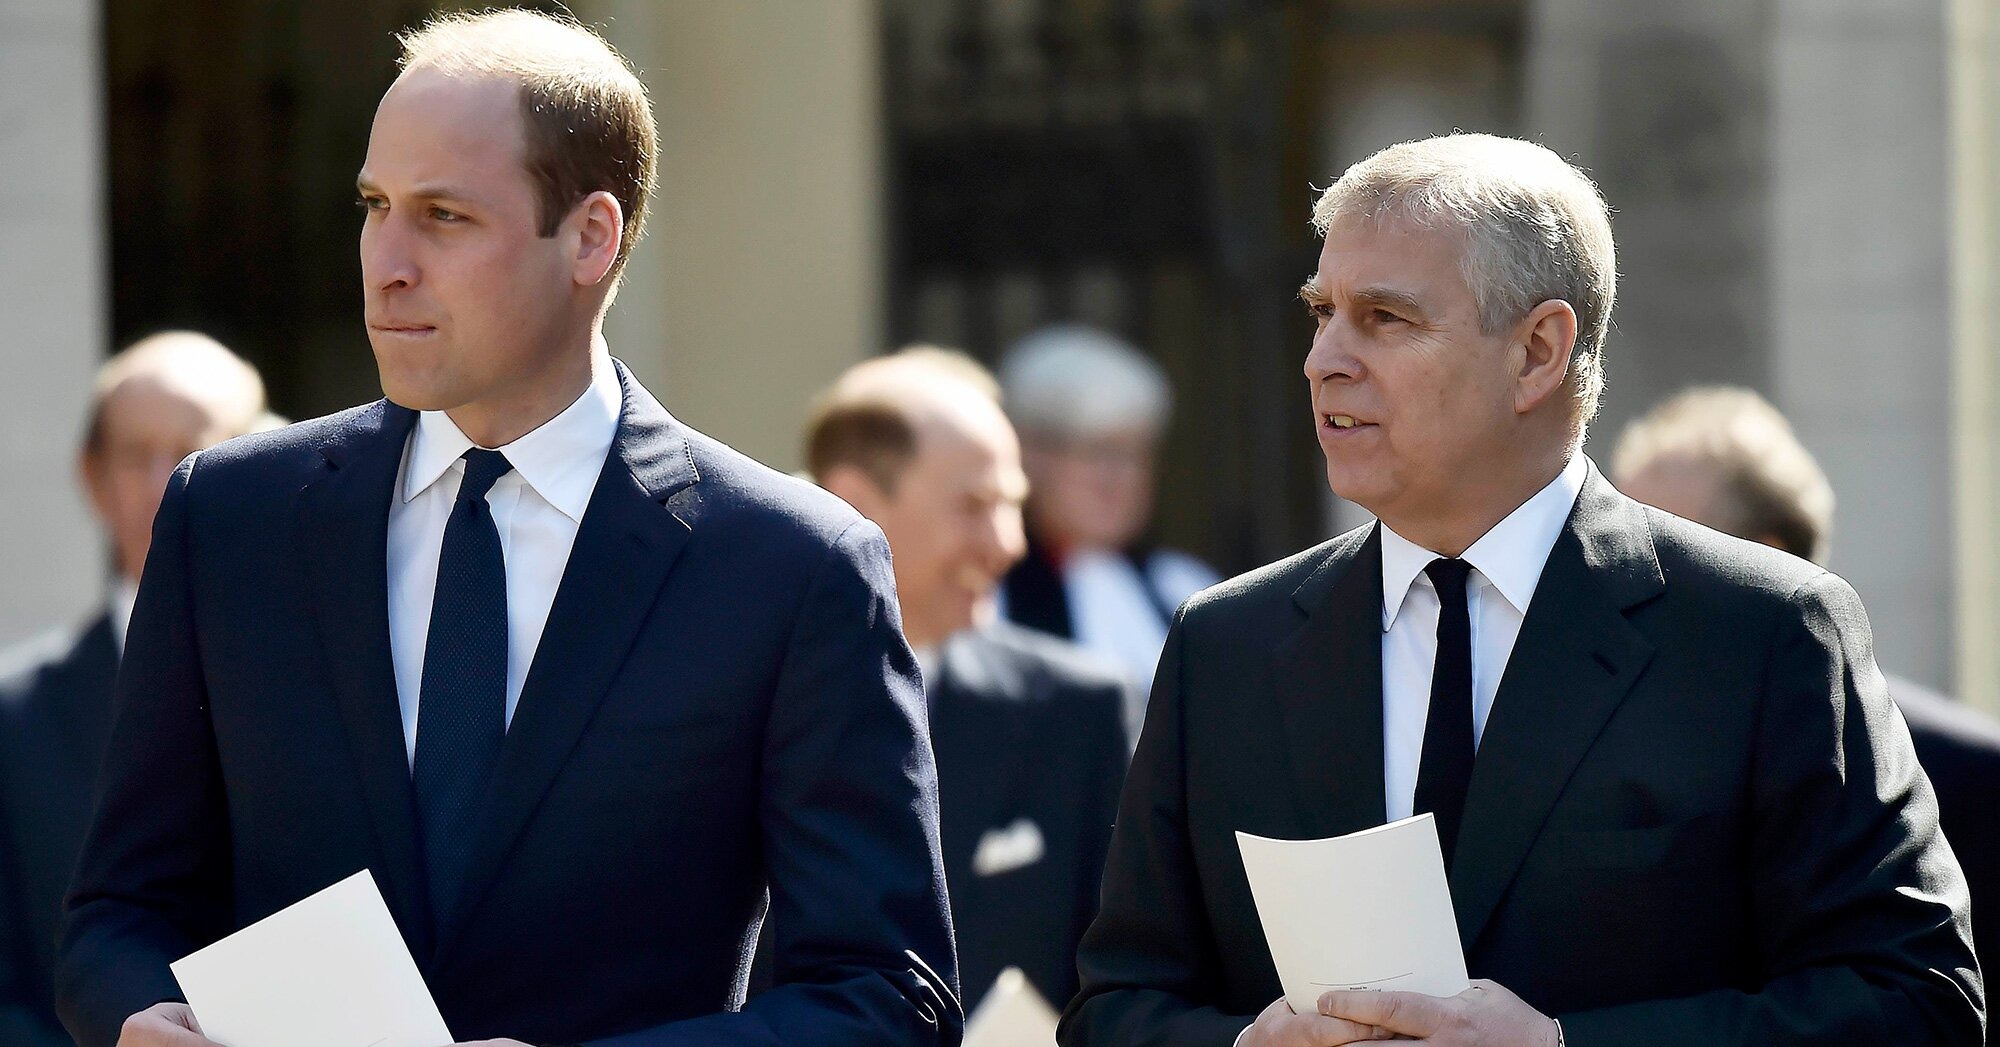 Prince Andrew's Bombshell BBC Interview Nominated by BAFTA — of Which Prince William Is President